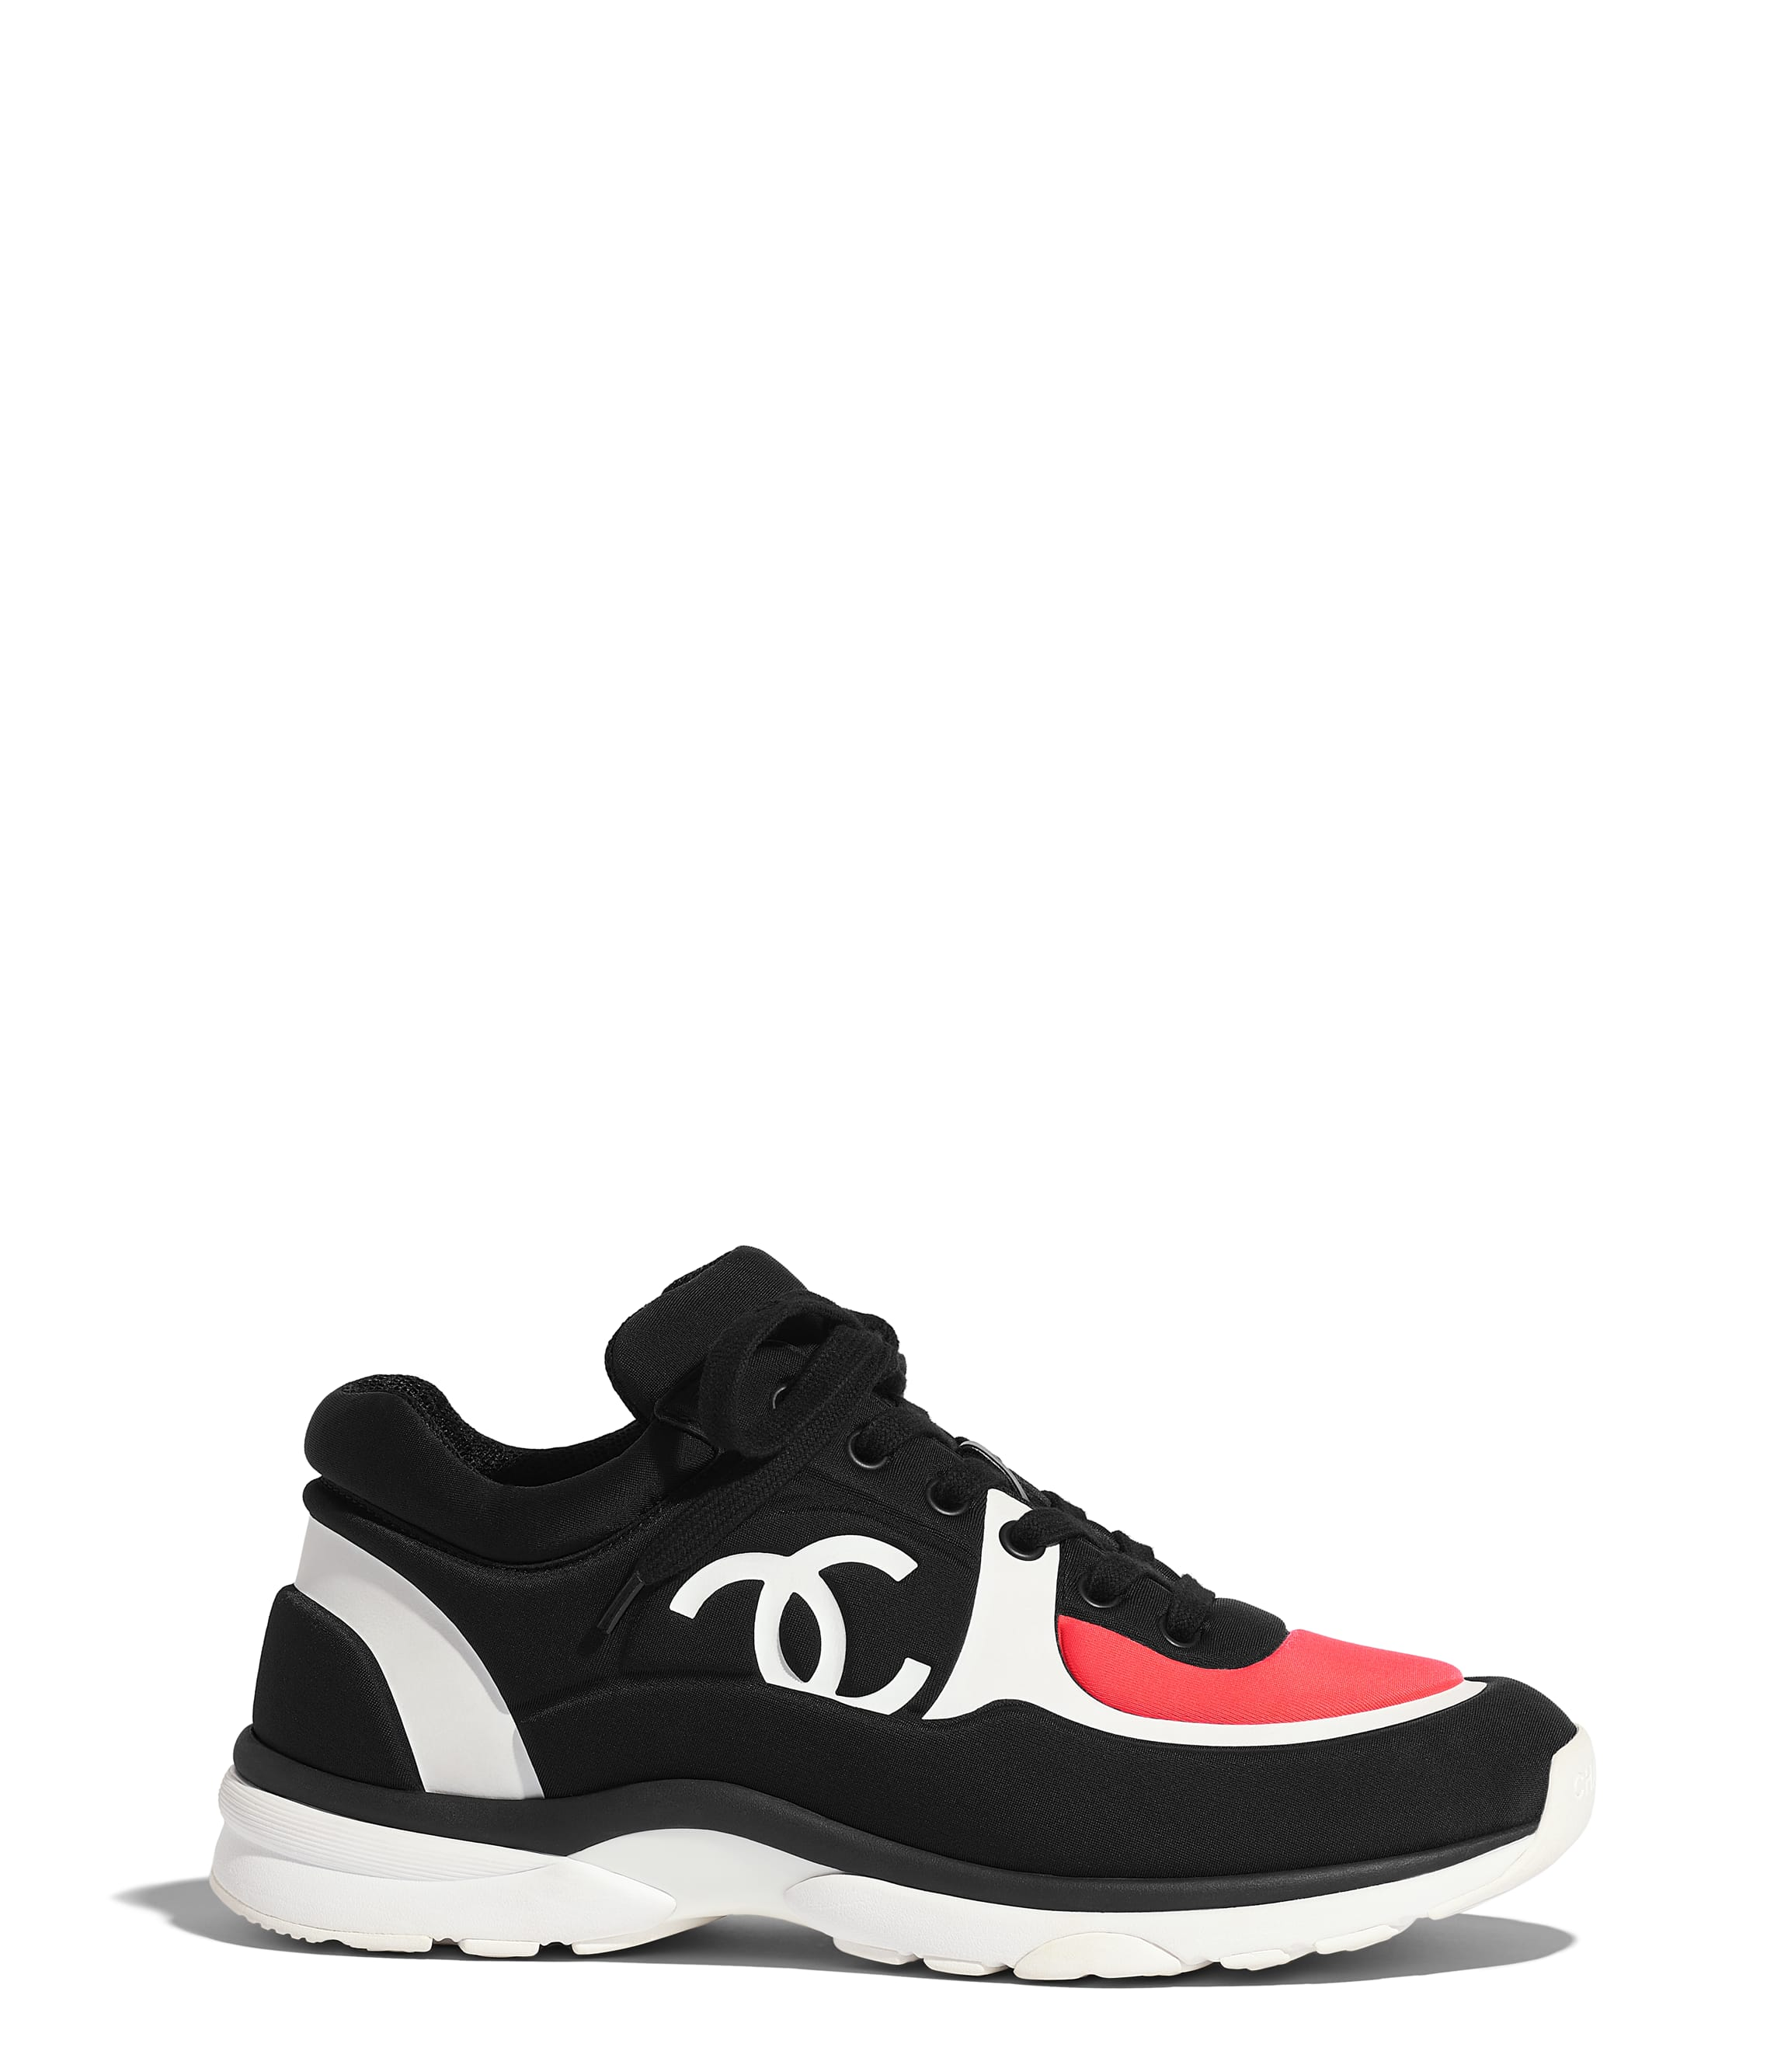 fab3f146ab87 Sneakers - Shoes - CHANEL